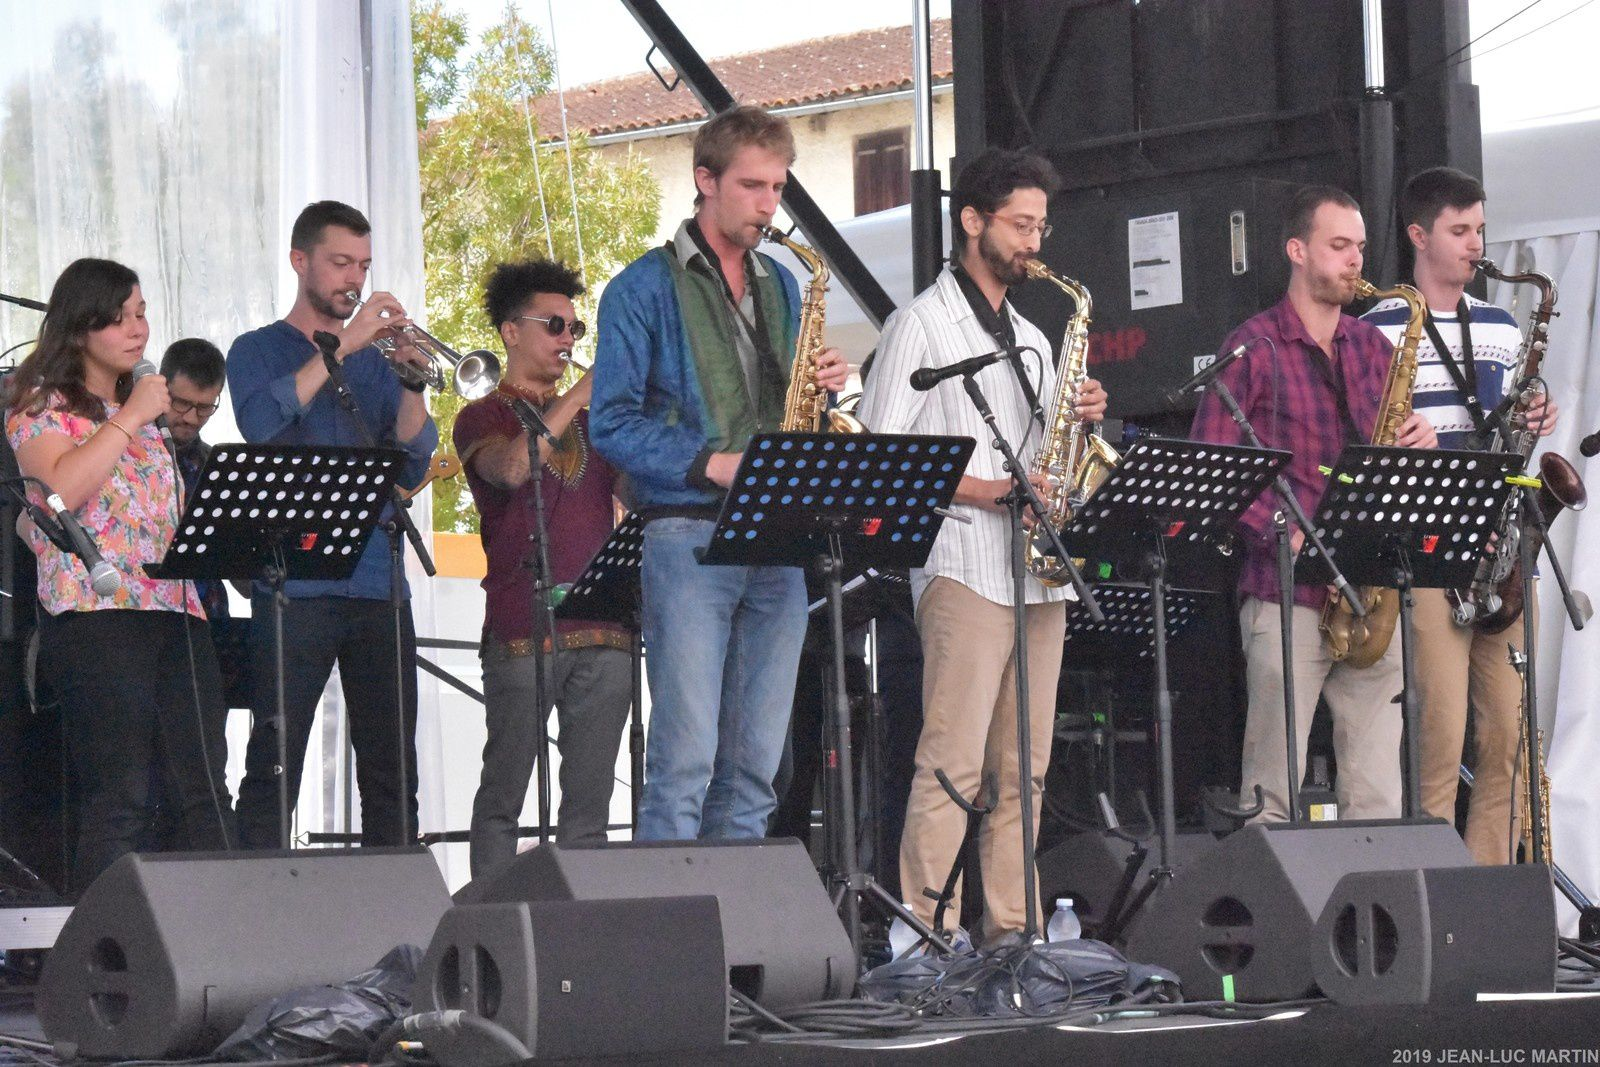 FRED PALLEM/LE GROo ( GRAND ORCHESTRE REGIONAL OCCITANIE) A JAZZ IN MARCIAC LE 1/8/2019